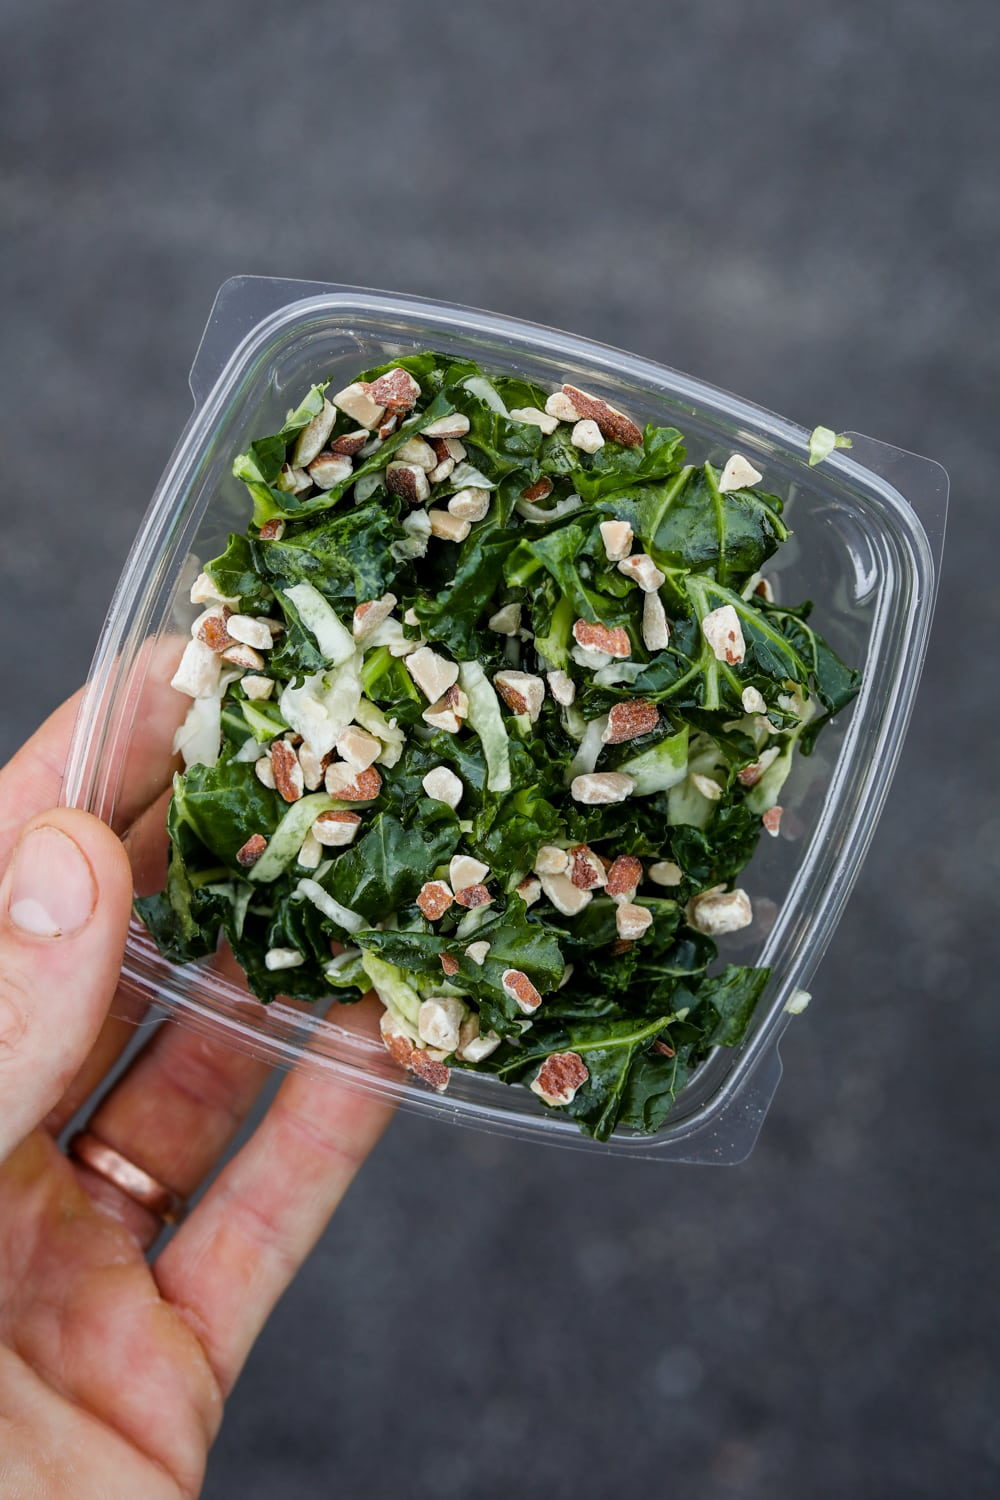 A hand holding a container of kale crunch salad from Chick-fil-A